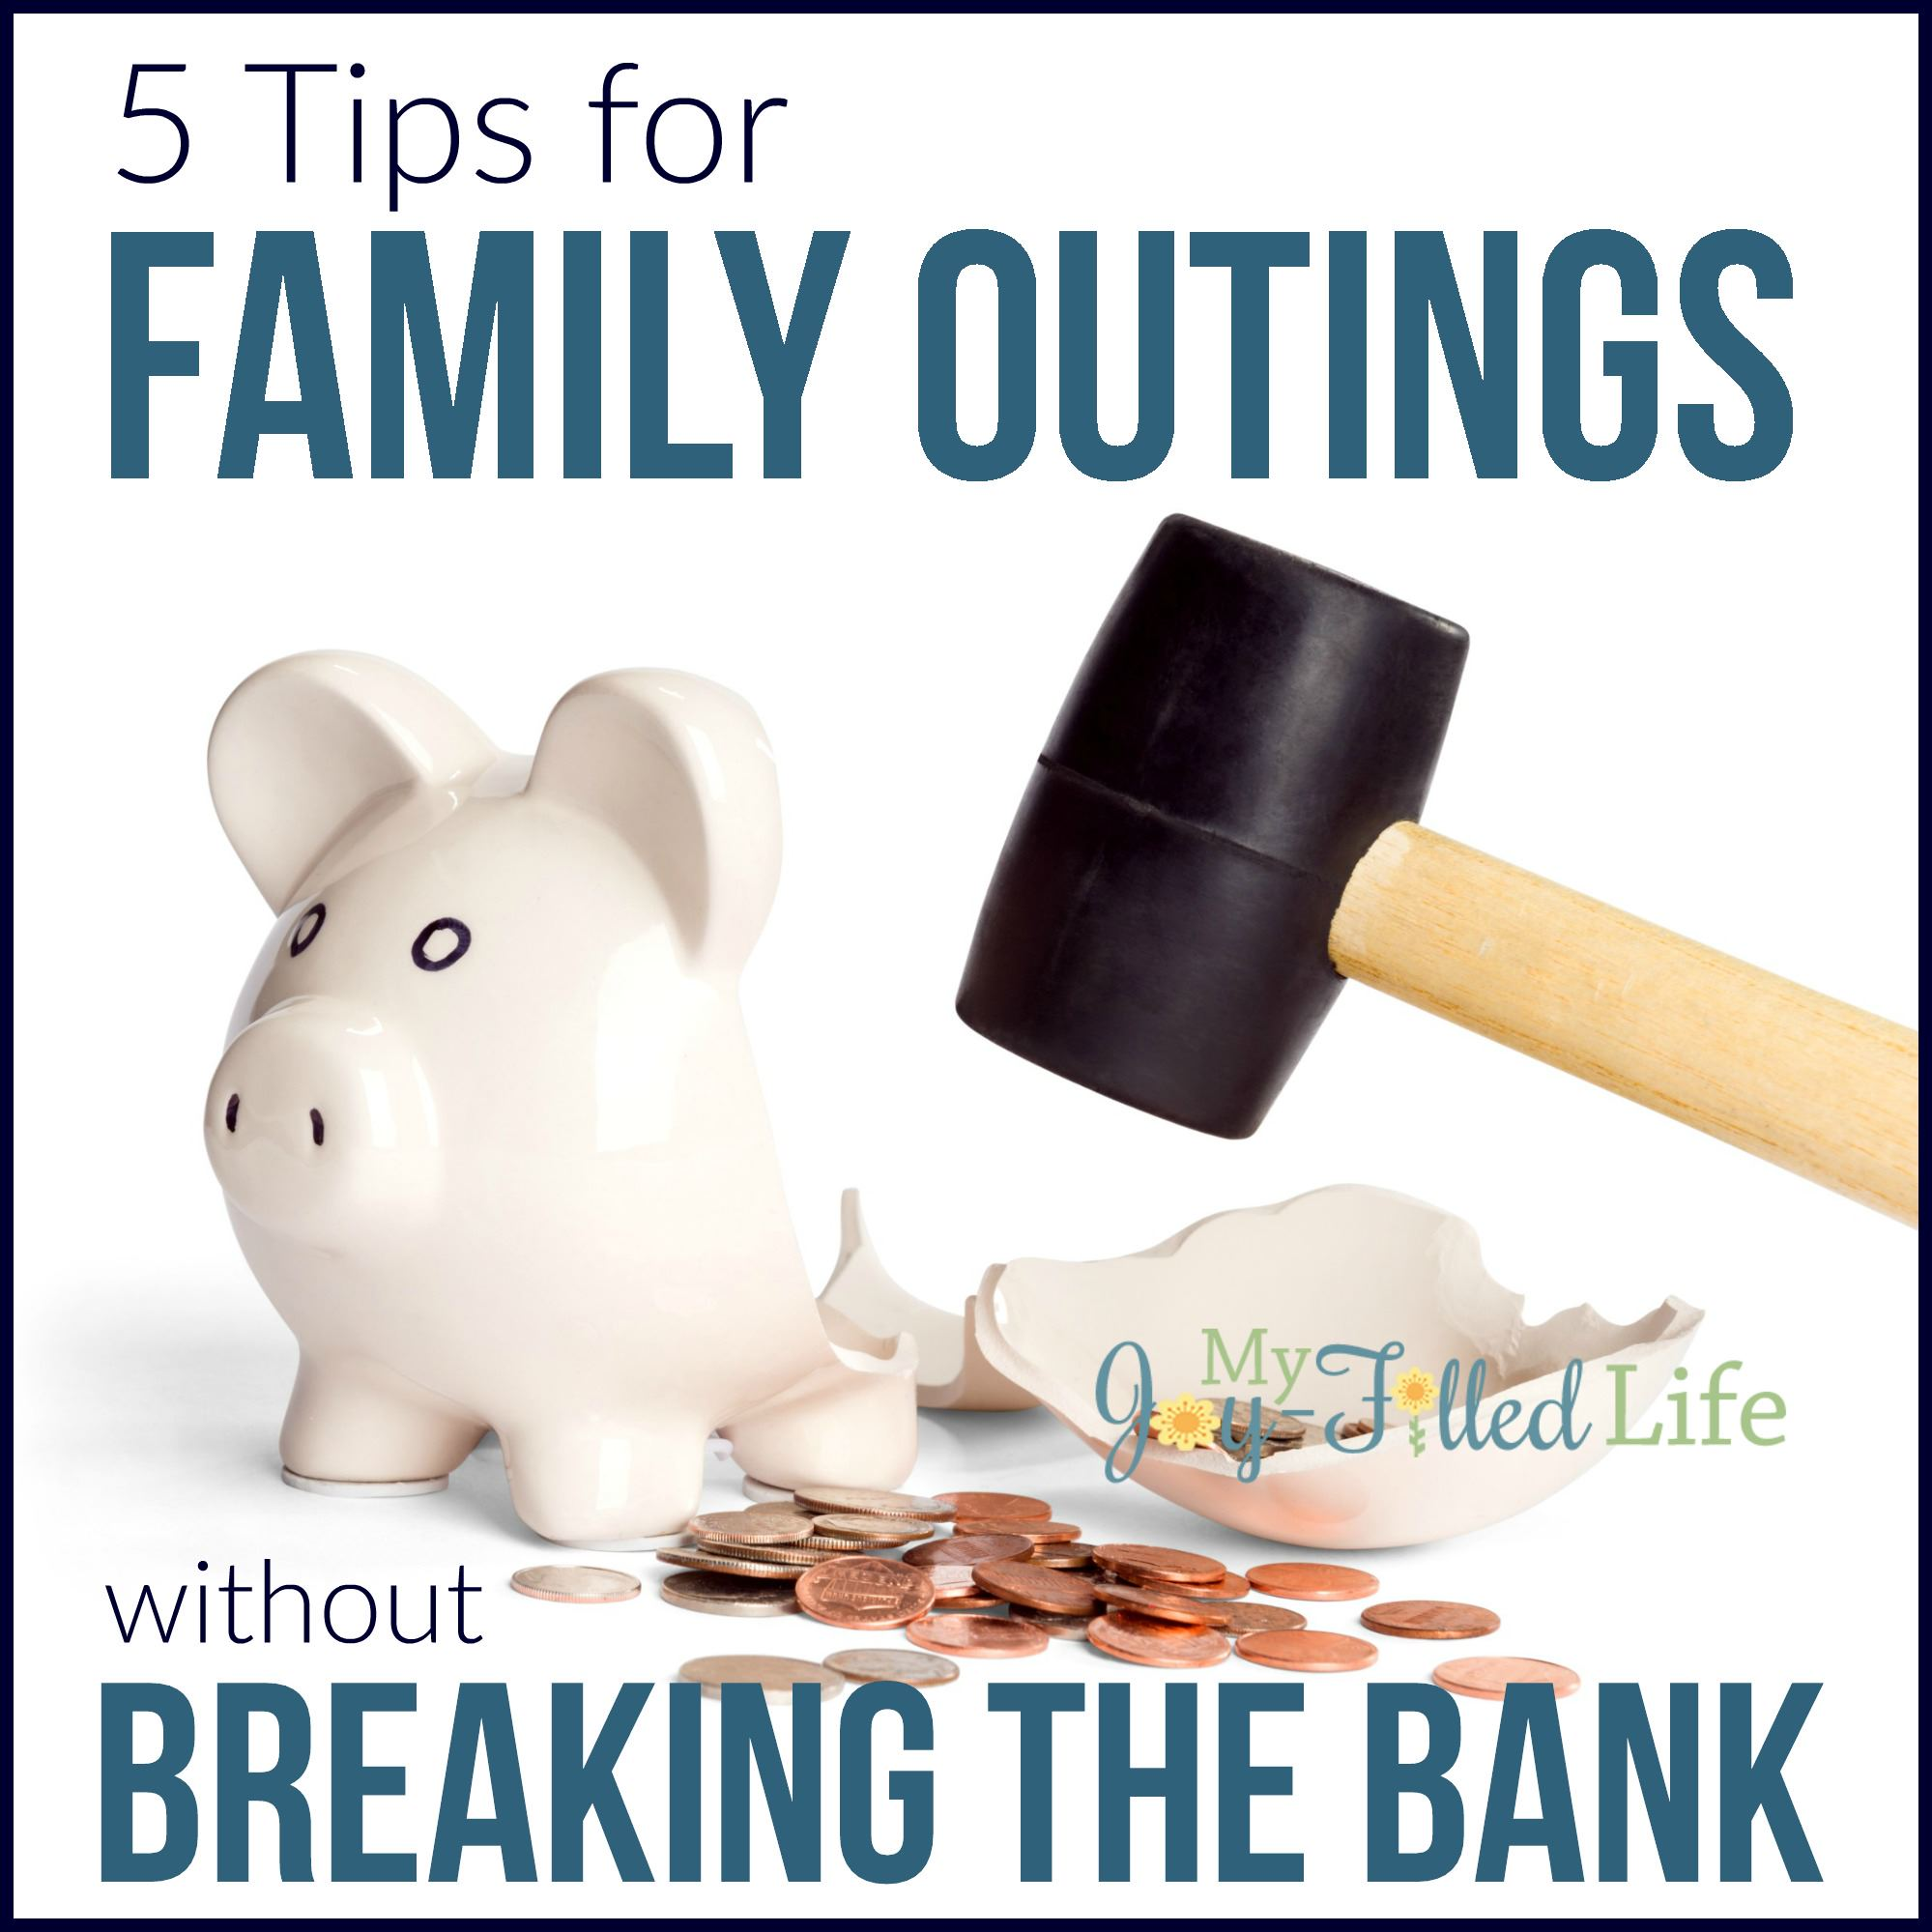 5 Tips for Family Outings Without Breaking the Bank